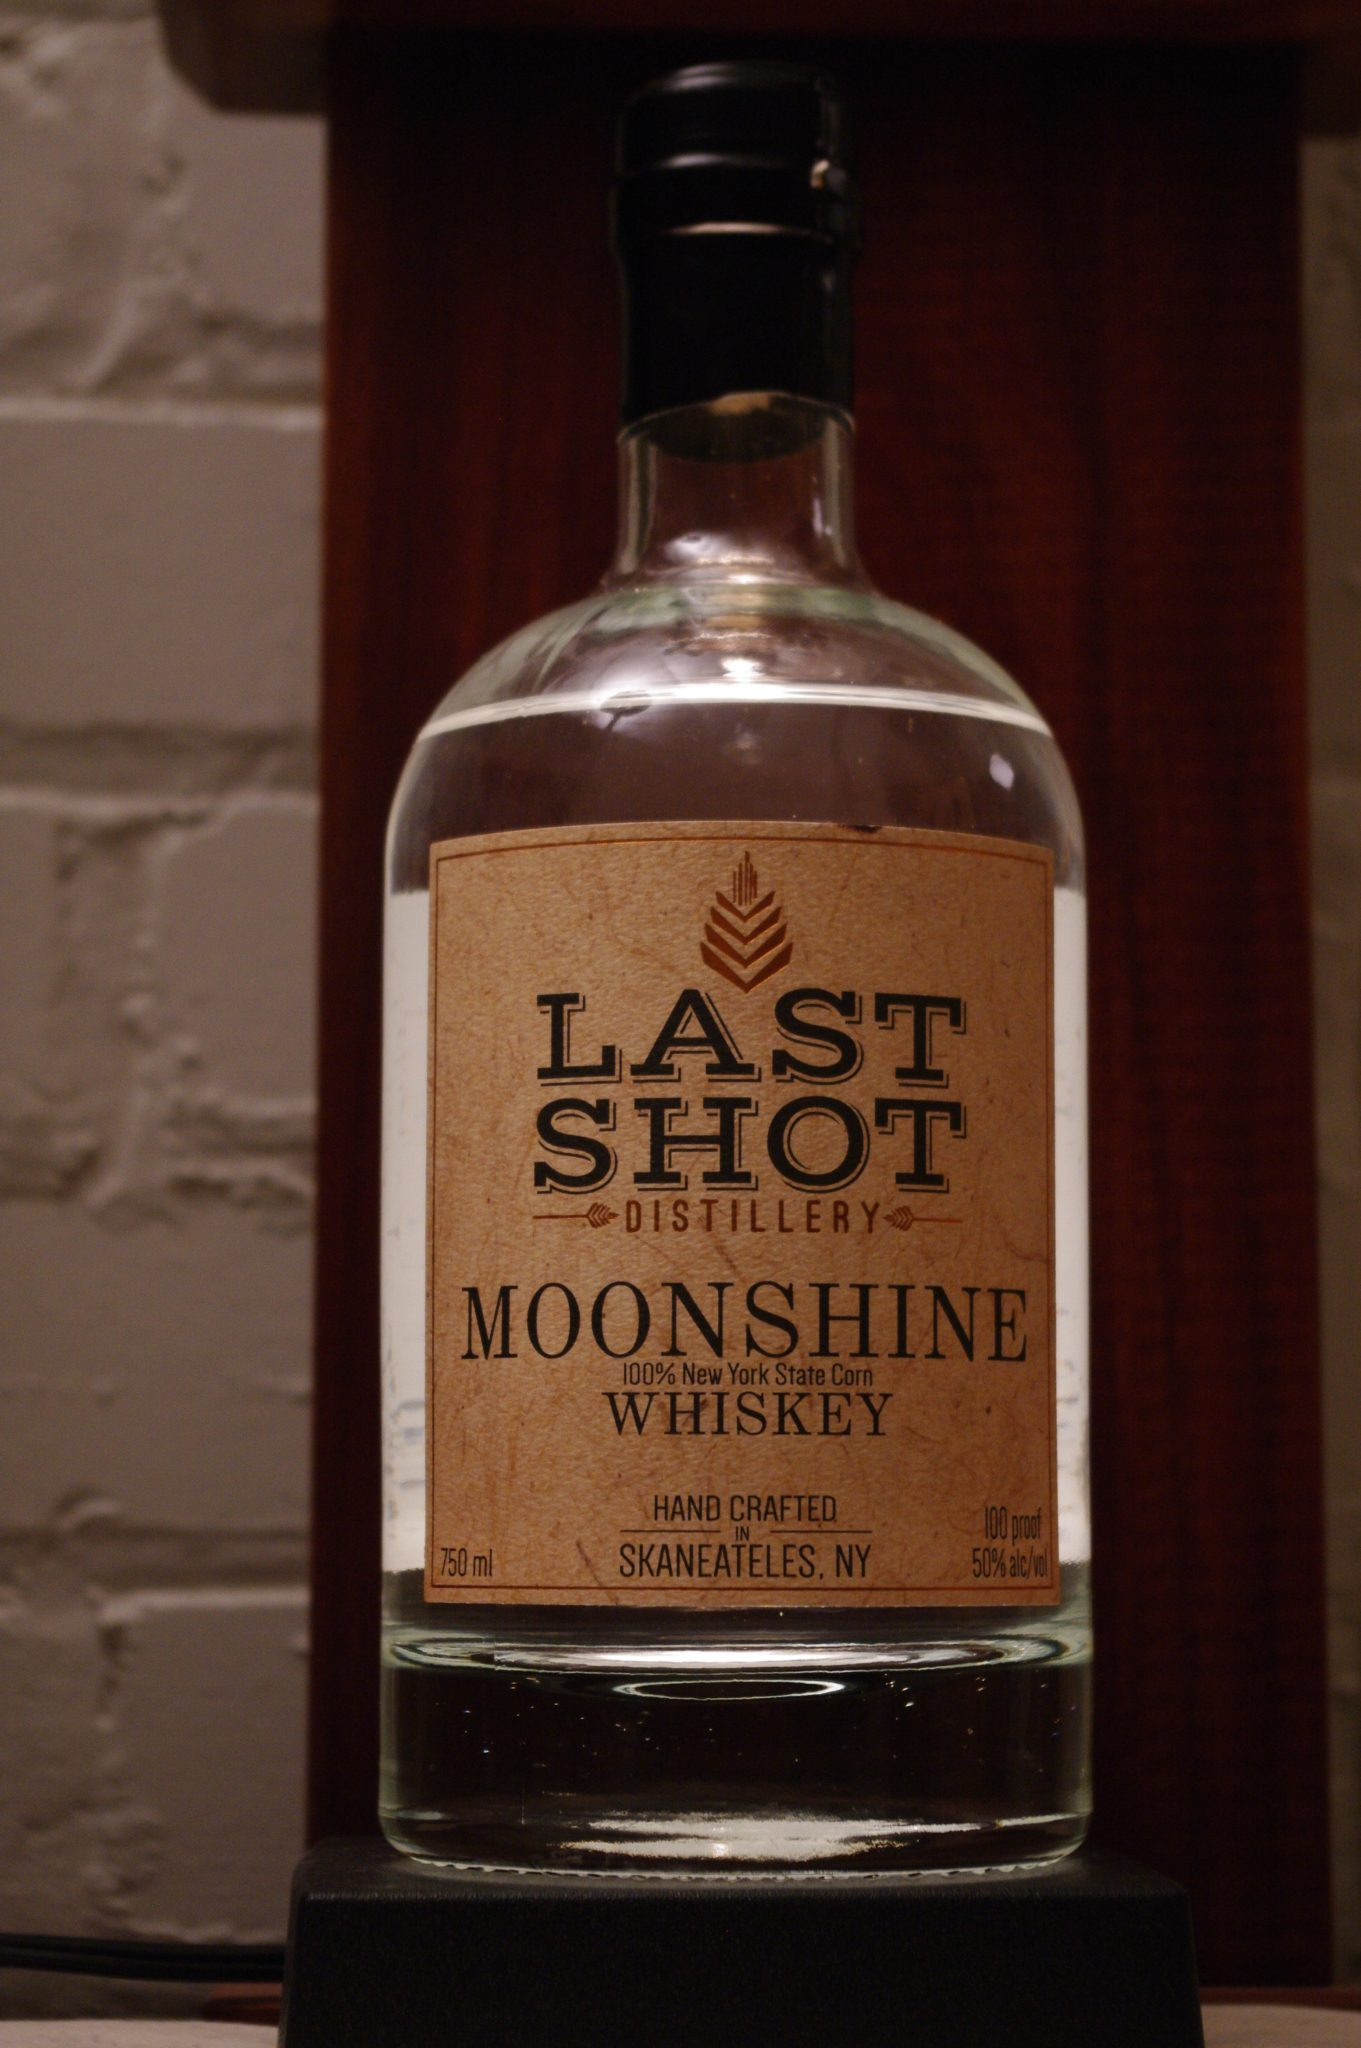 How to make a good cognac from home-made moonshine